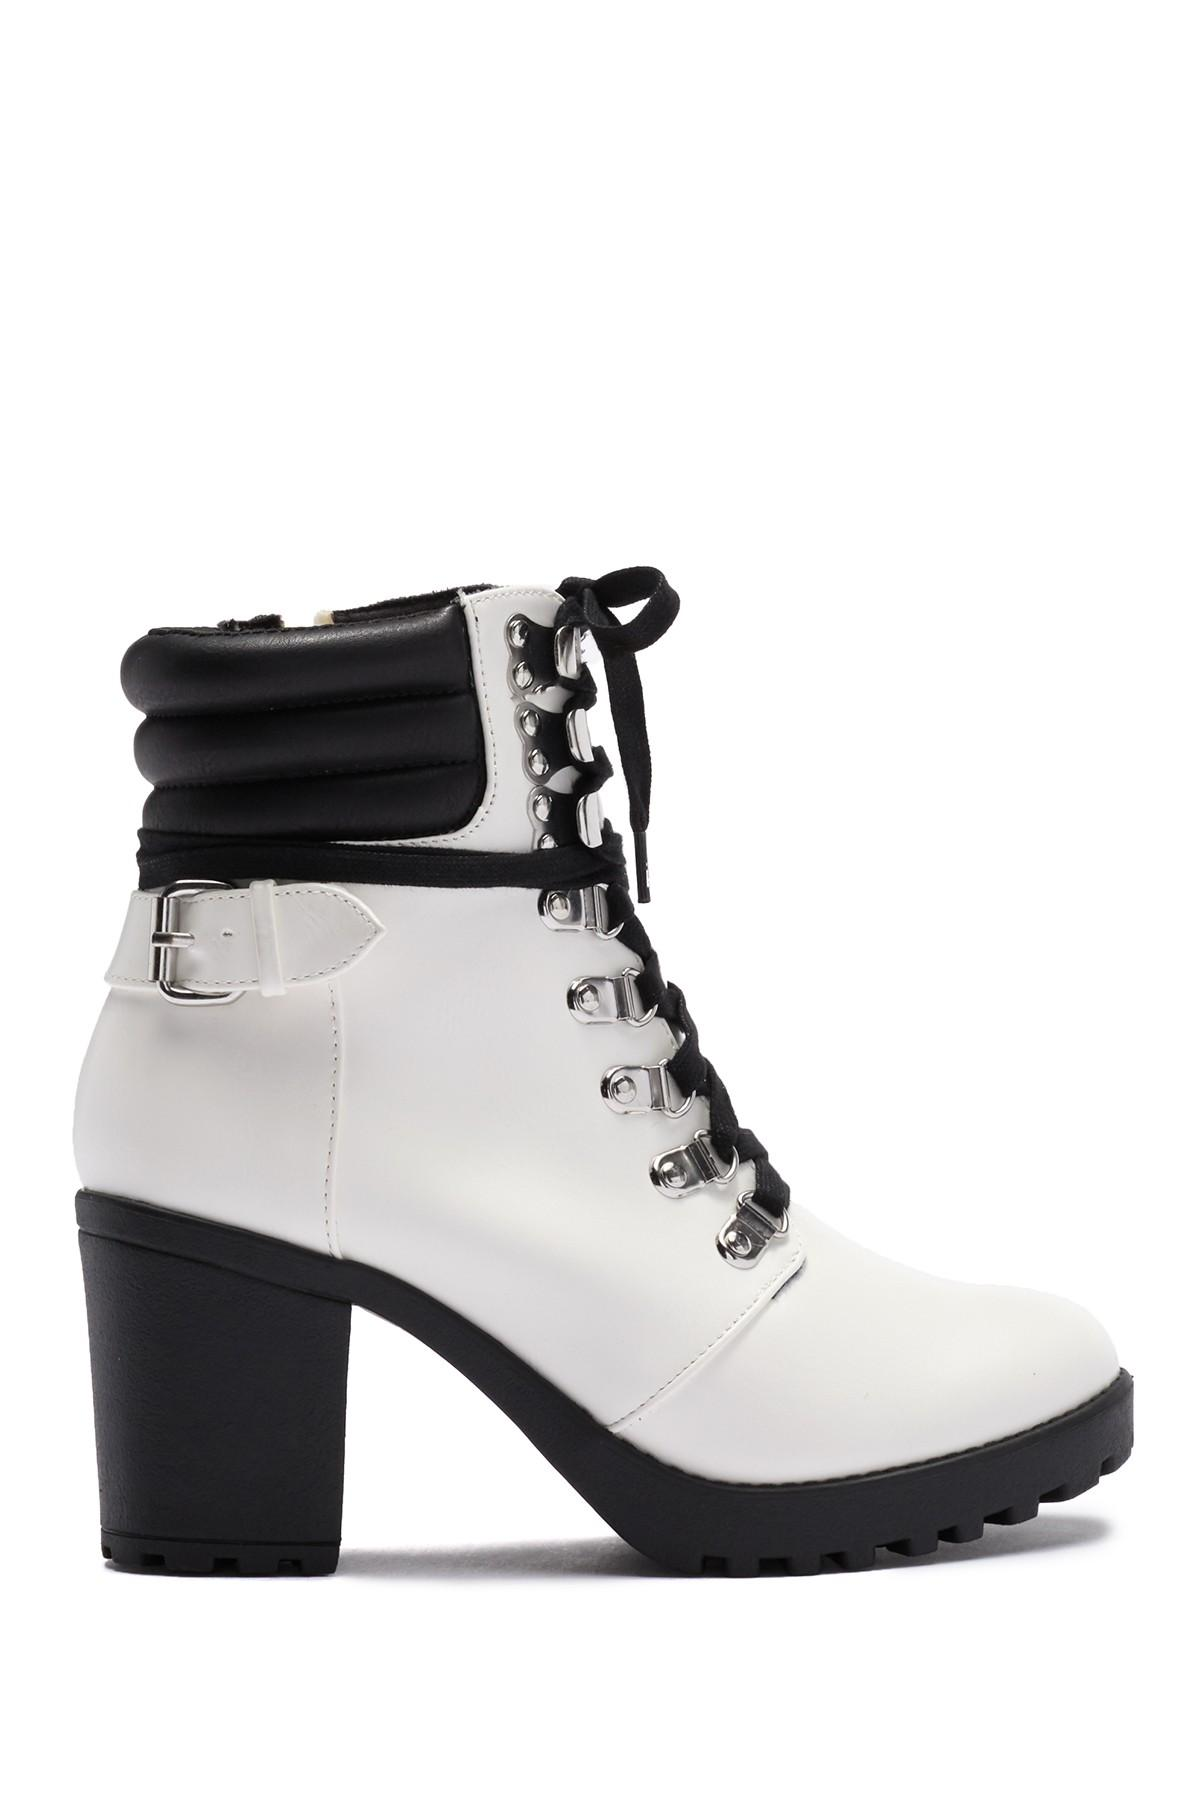 MIA Floraa Lace-up Boot in White - Lyst